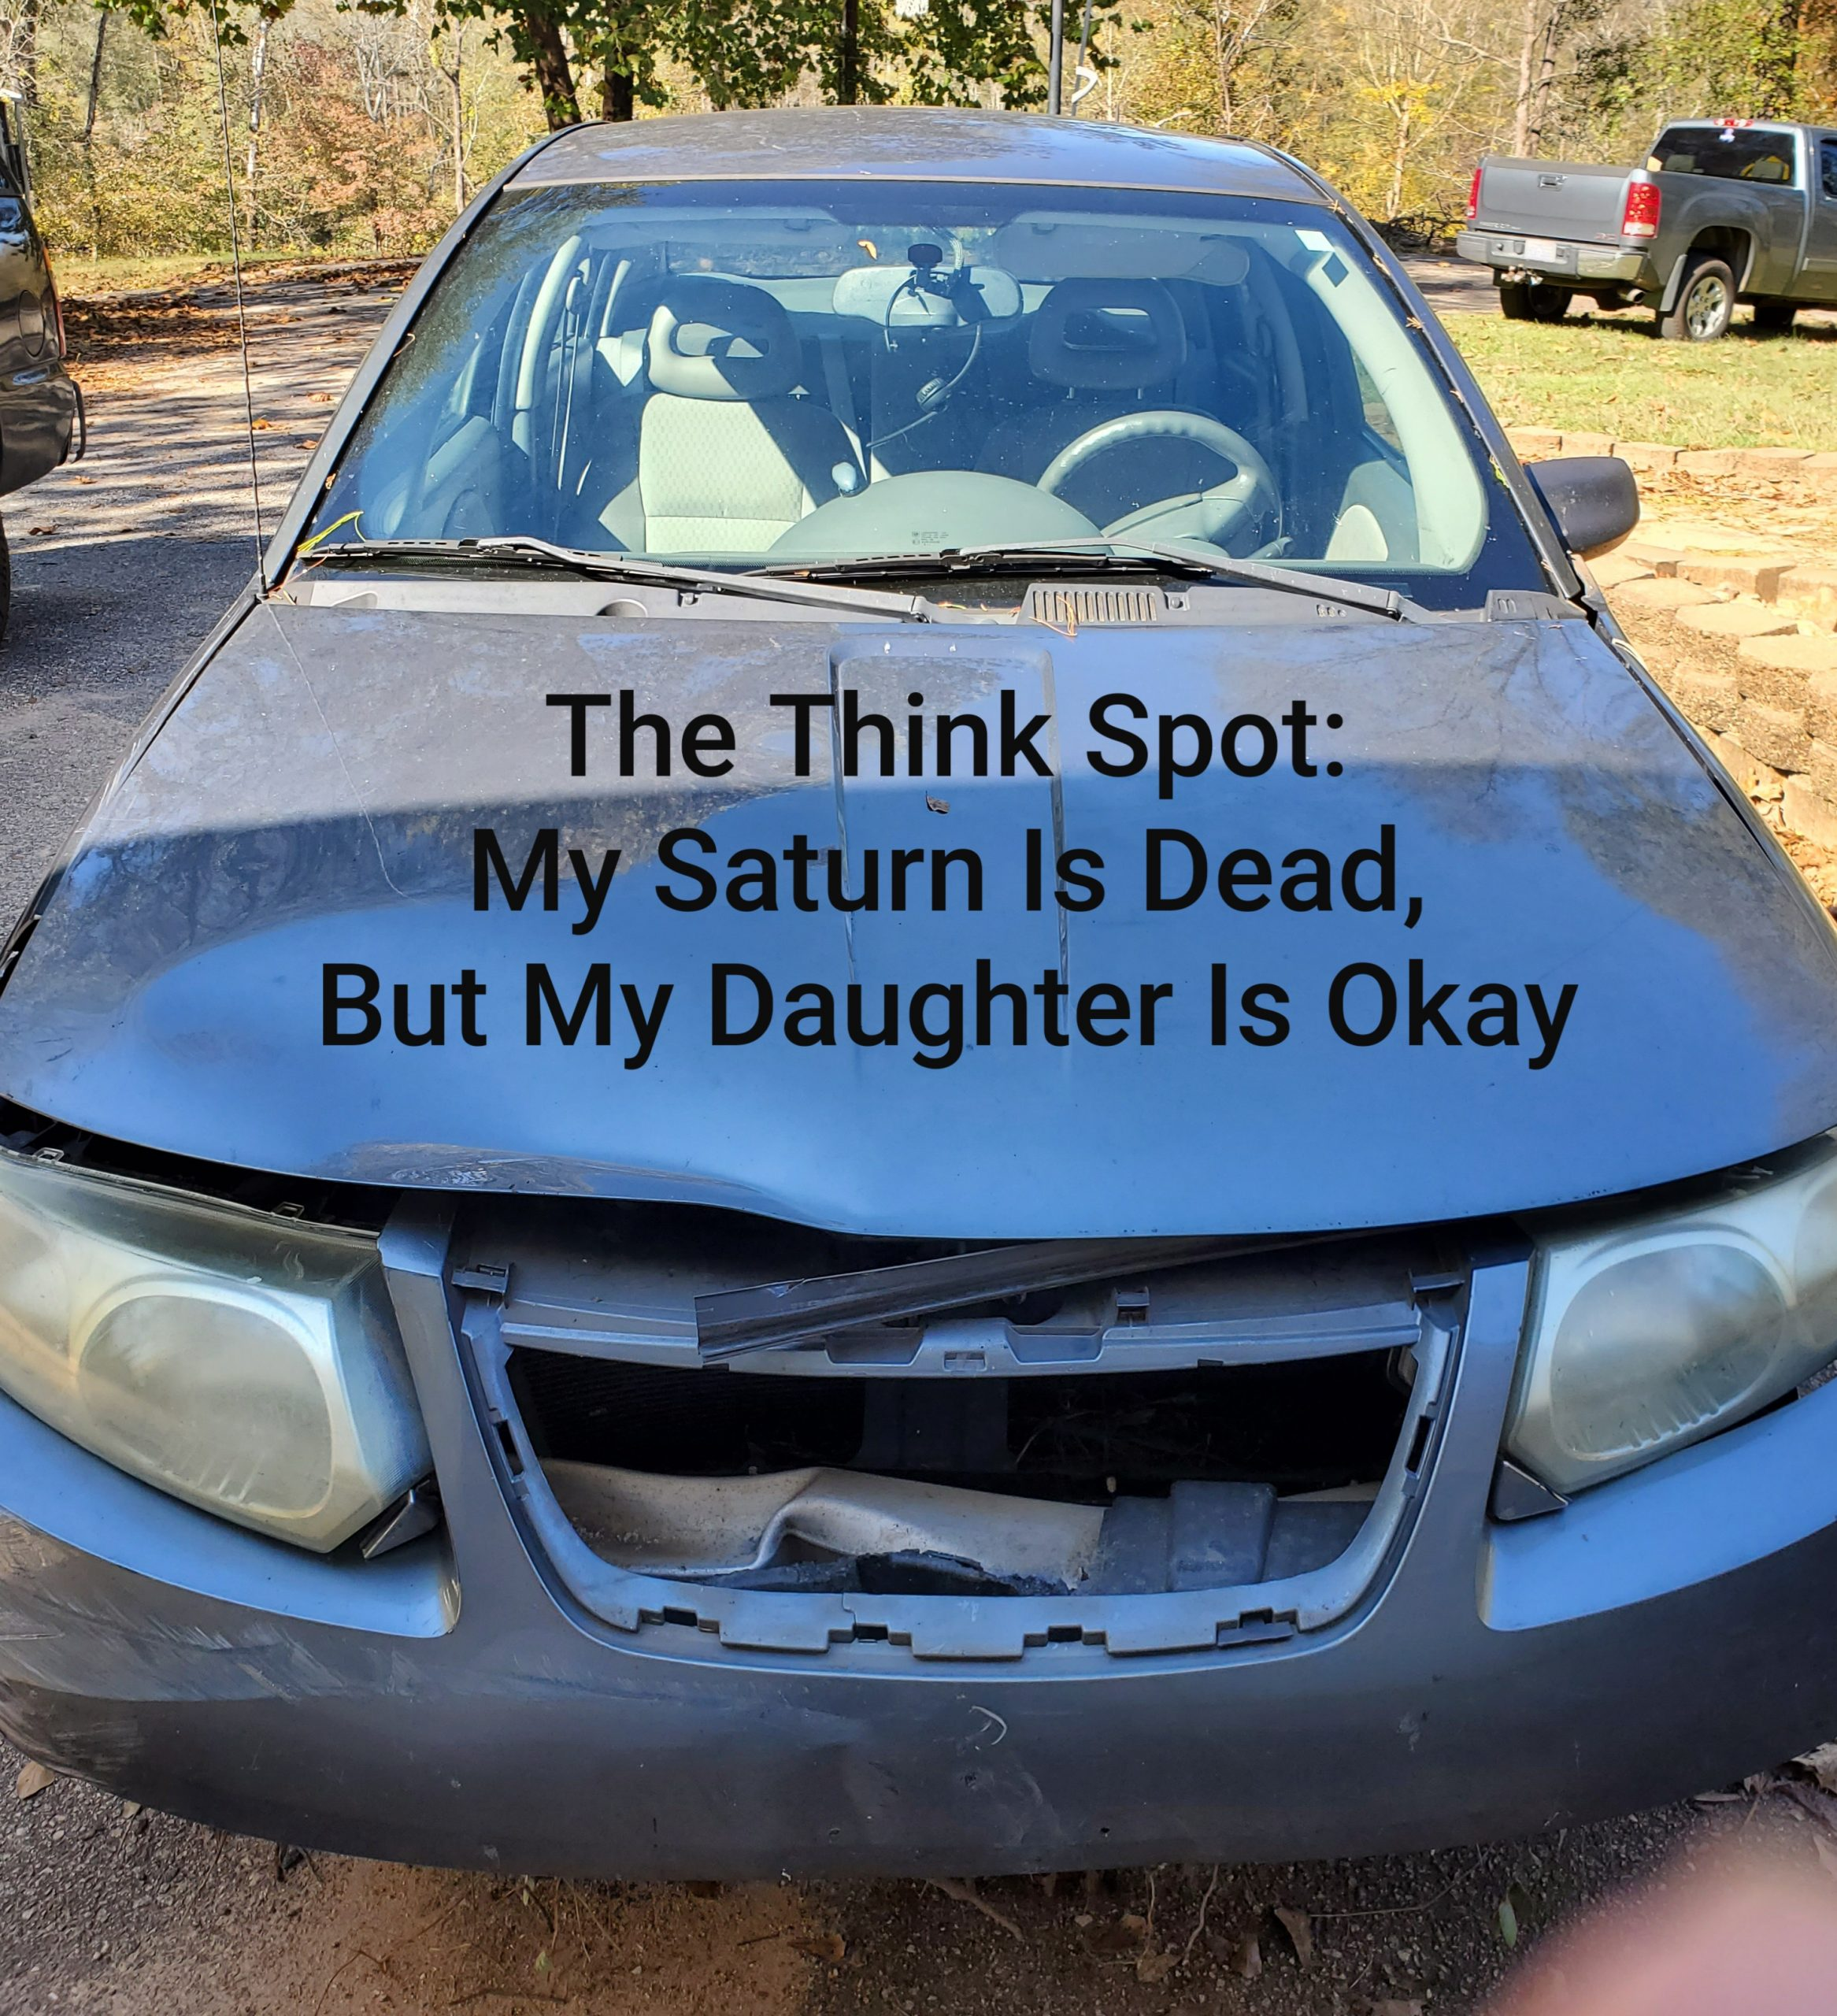 """My Saturn Is Dead, But My Daughter Is Safe"""